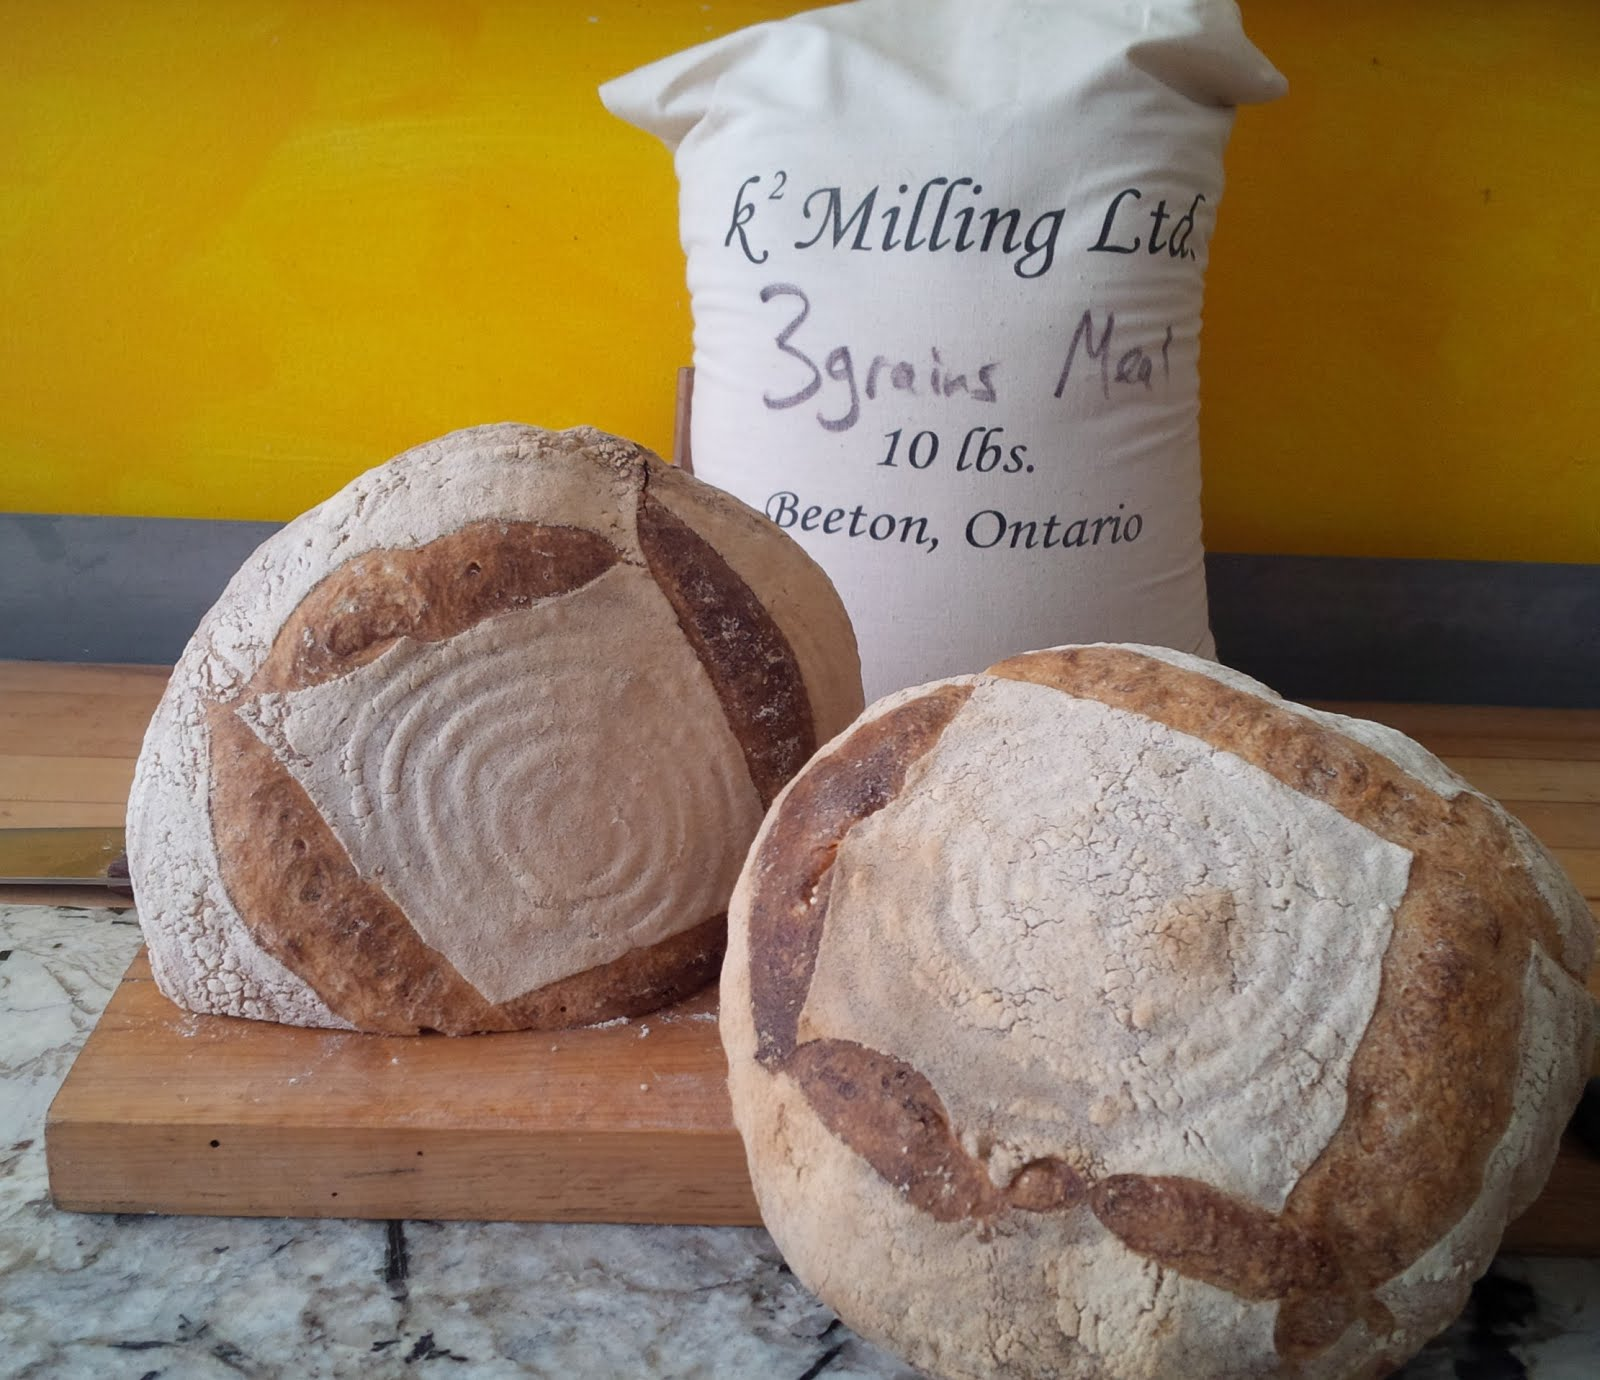 Beautful sourdough bread from Bracebridge